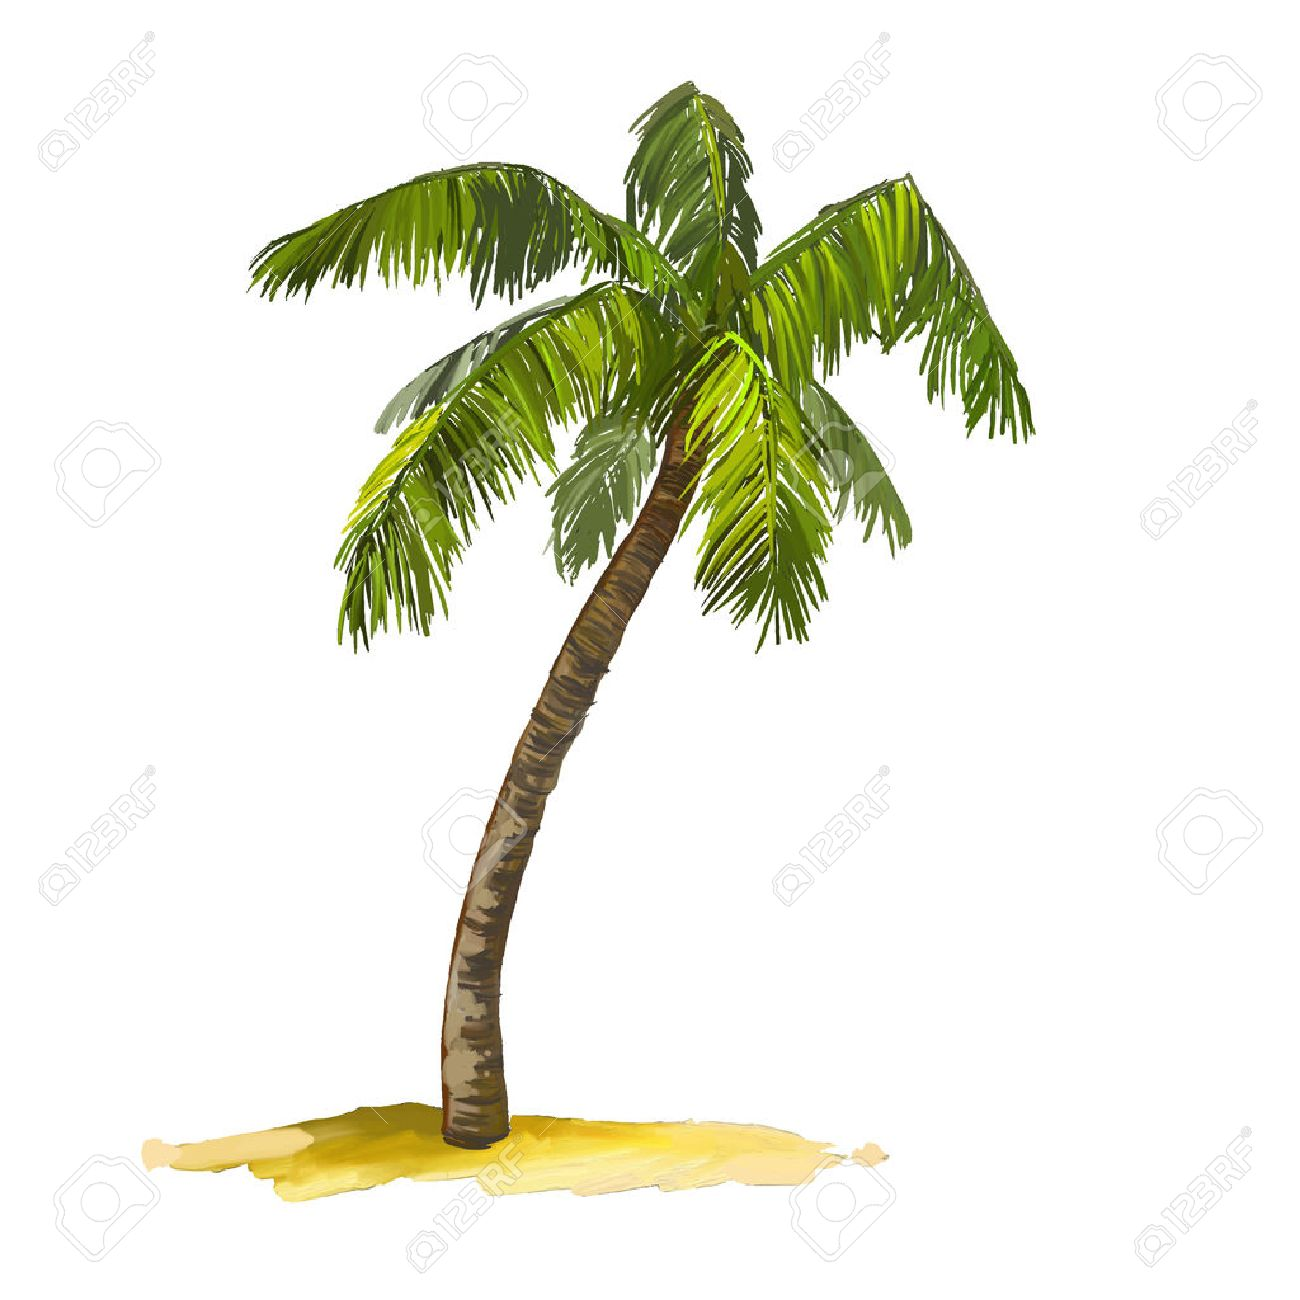 palm tree vector illustration hand drawn painted watercolor - 38414371